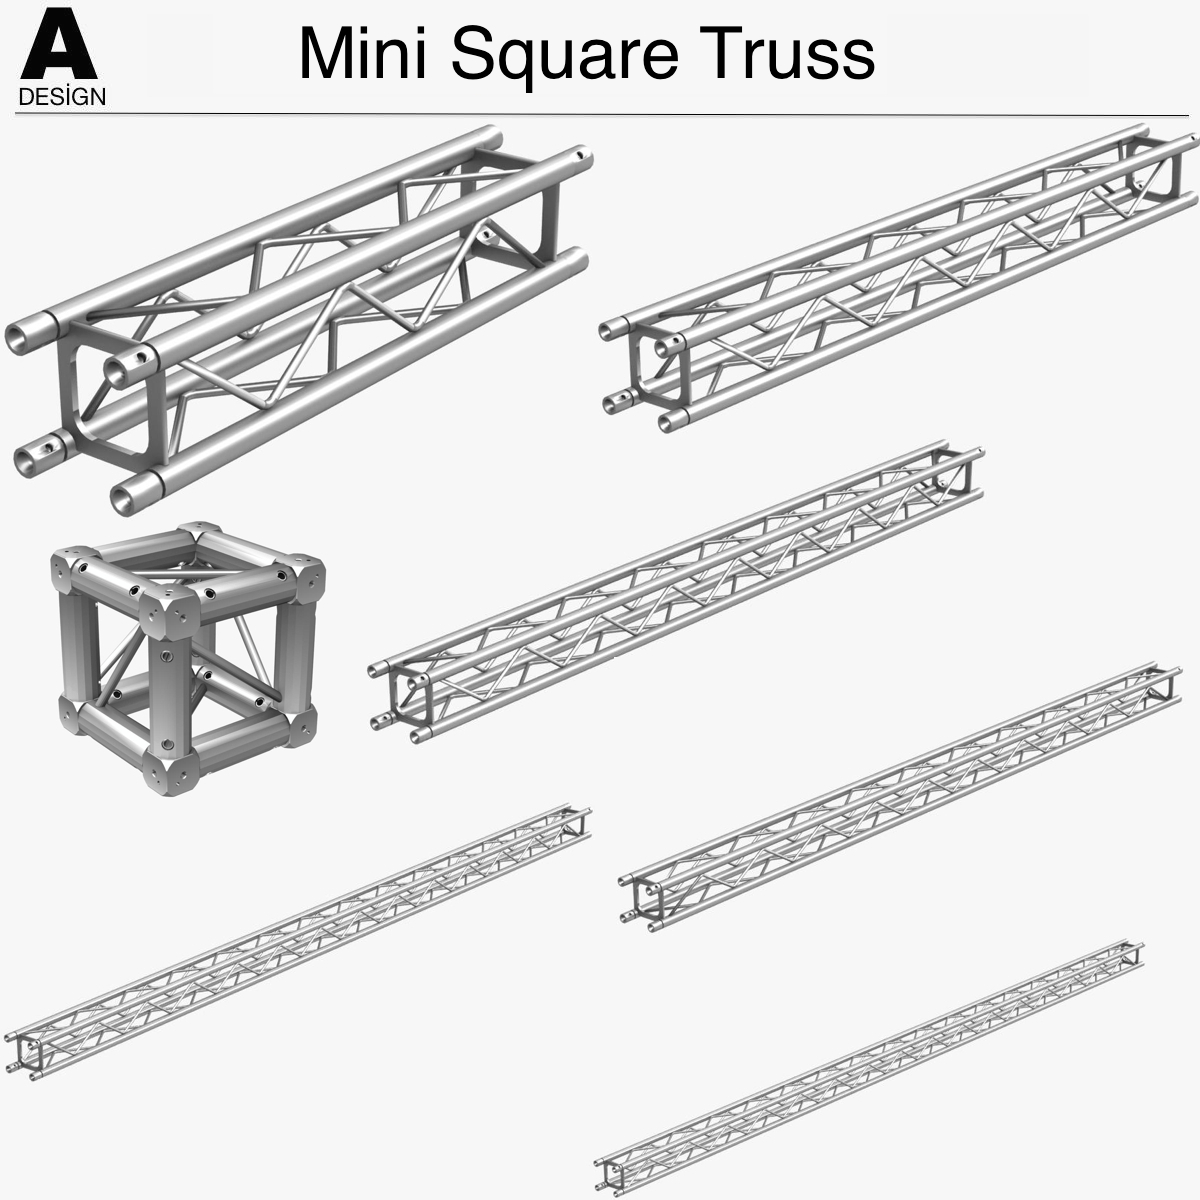 mini square truss (collection 7 modular pieces) 3d model 3ds max 3ds project alias studio dxf fbx c4d dae other png  texture obj 268512